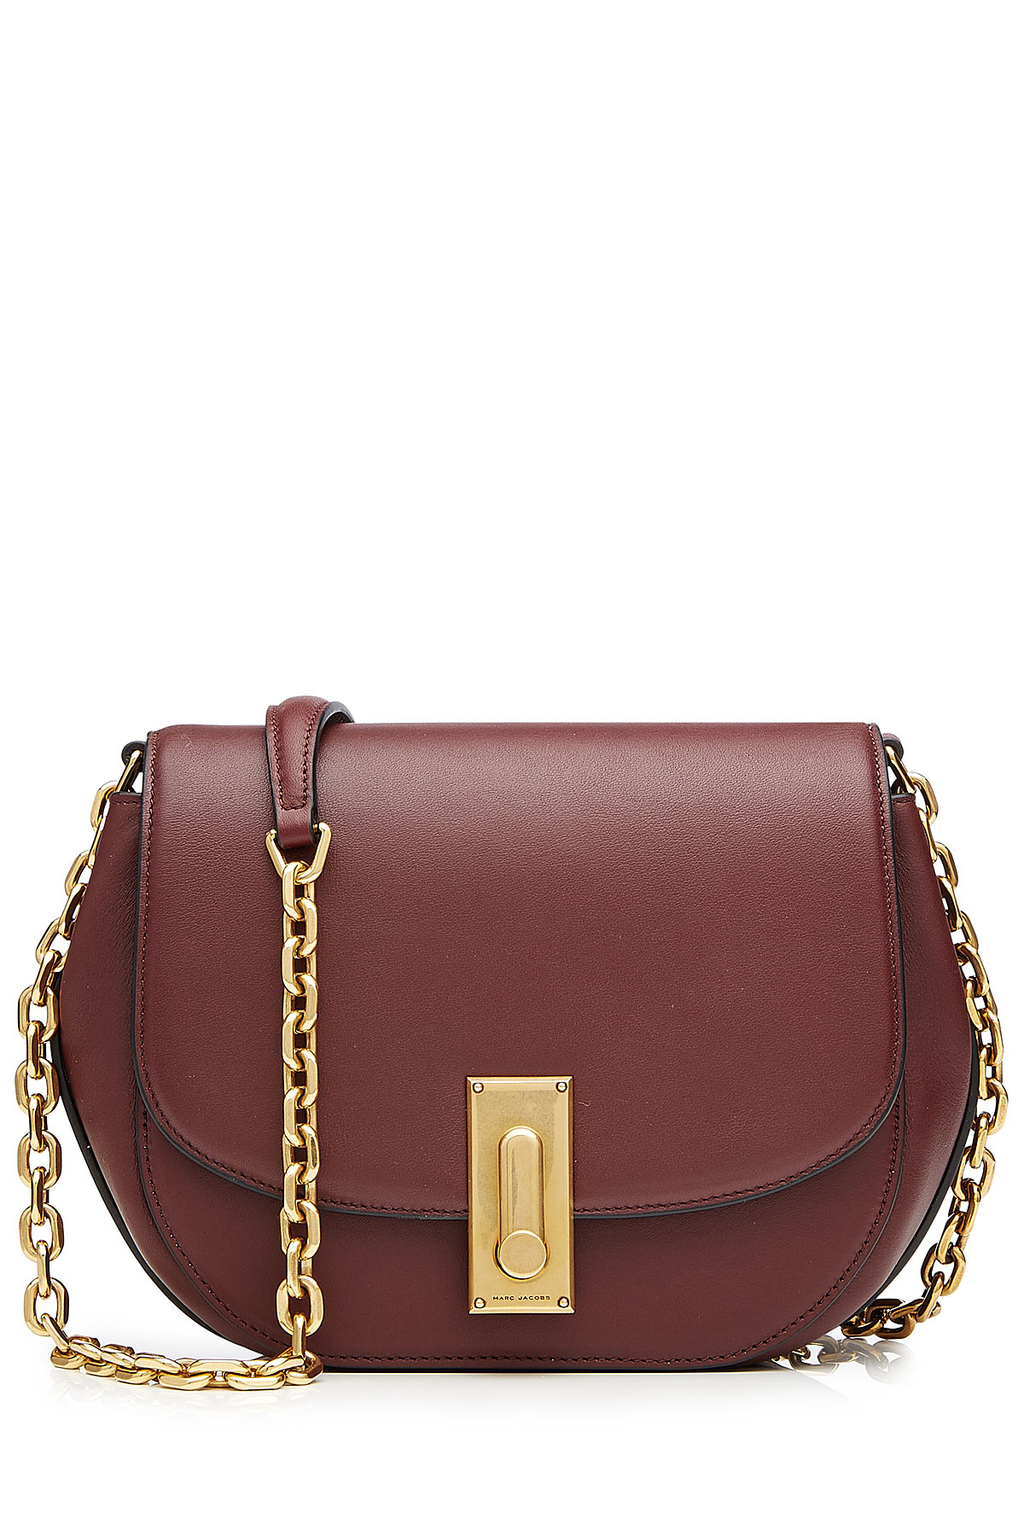 West End Leather Saddle Bag Red - predominant colour: burgundy; secondary colour: gold; occasions: casual, creative work; type of pattern: standard; style: saddle; length: across body/long; size: standard; material: leather; pattern: plain; finish: plain; embellishment: chain/metal; season: s/s 2016